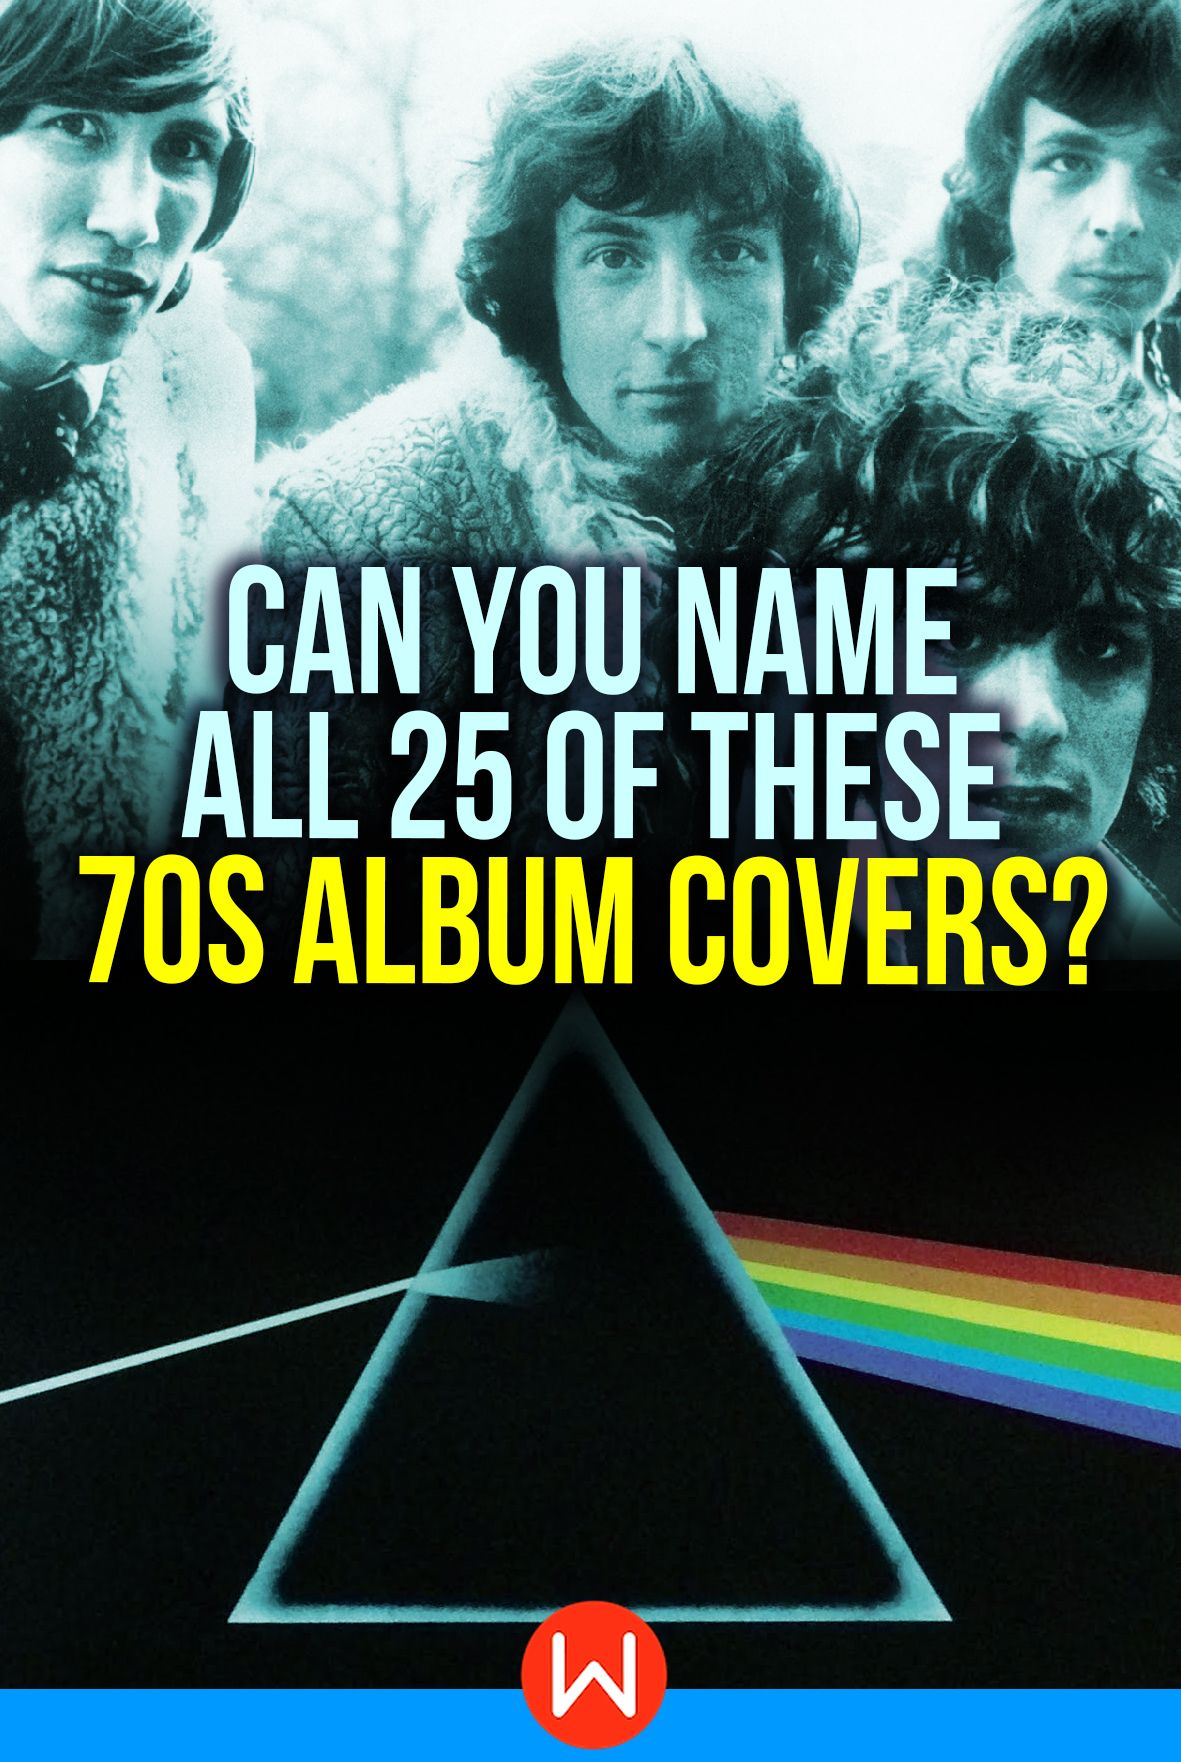 Are You 70s Music Savvy Album Cover Memory Game Quiz Can Remember These Iconic Covers From Pink Floyd Dark Side Of The Moon